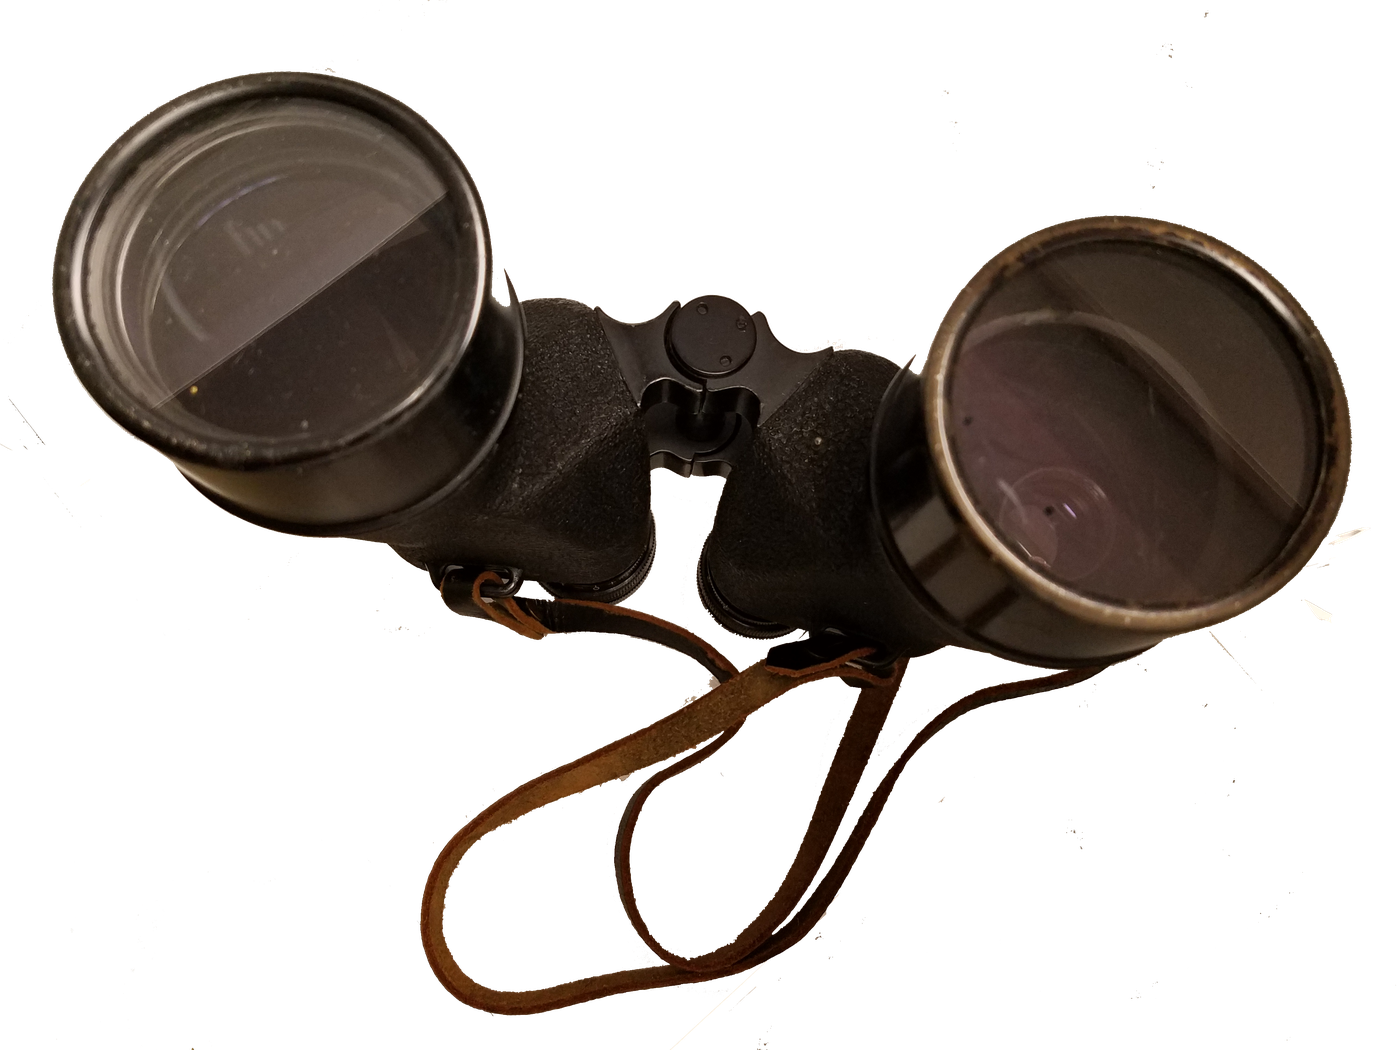 Photo of binoculars fitted with a concealed camera.